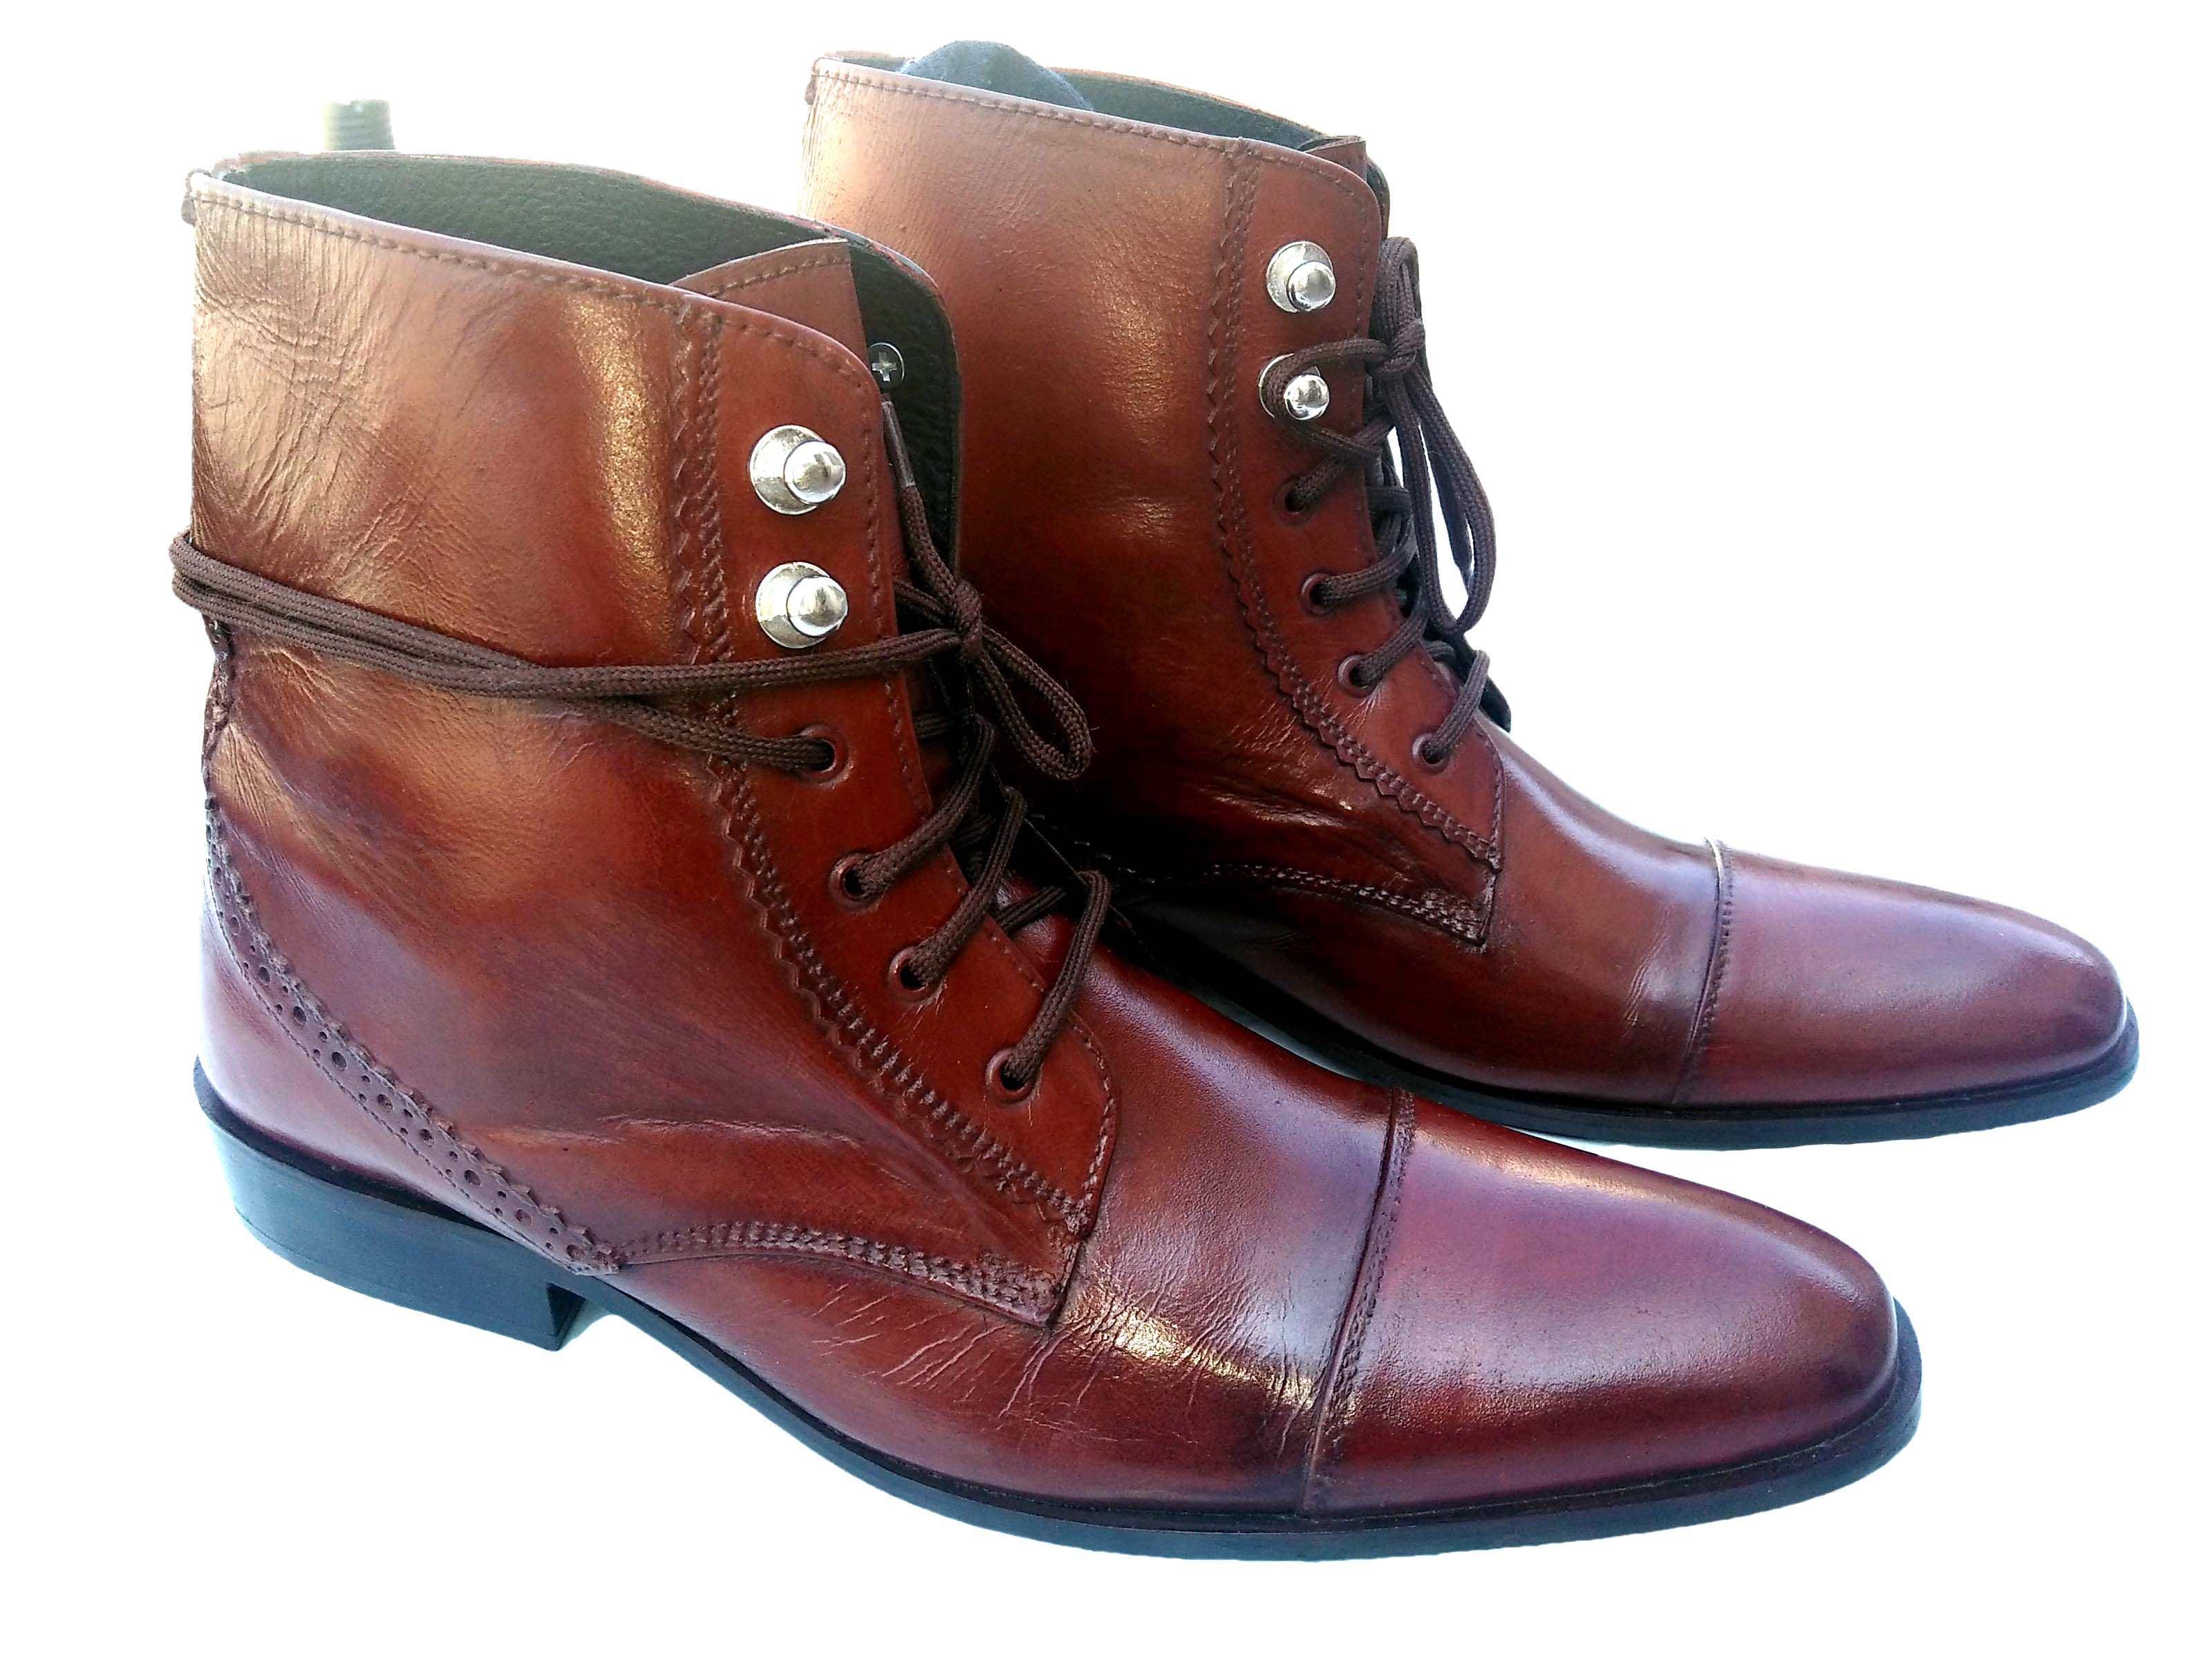 handmade s brown leather lace up boots ankle high